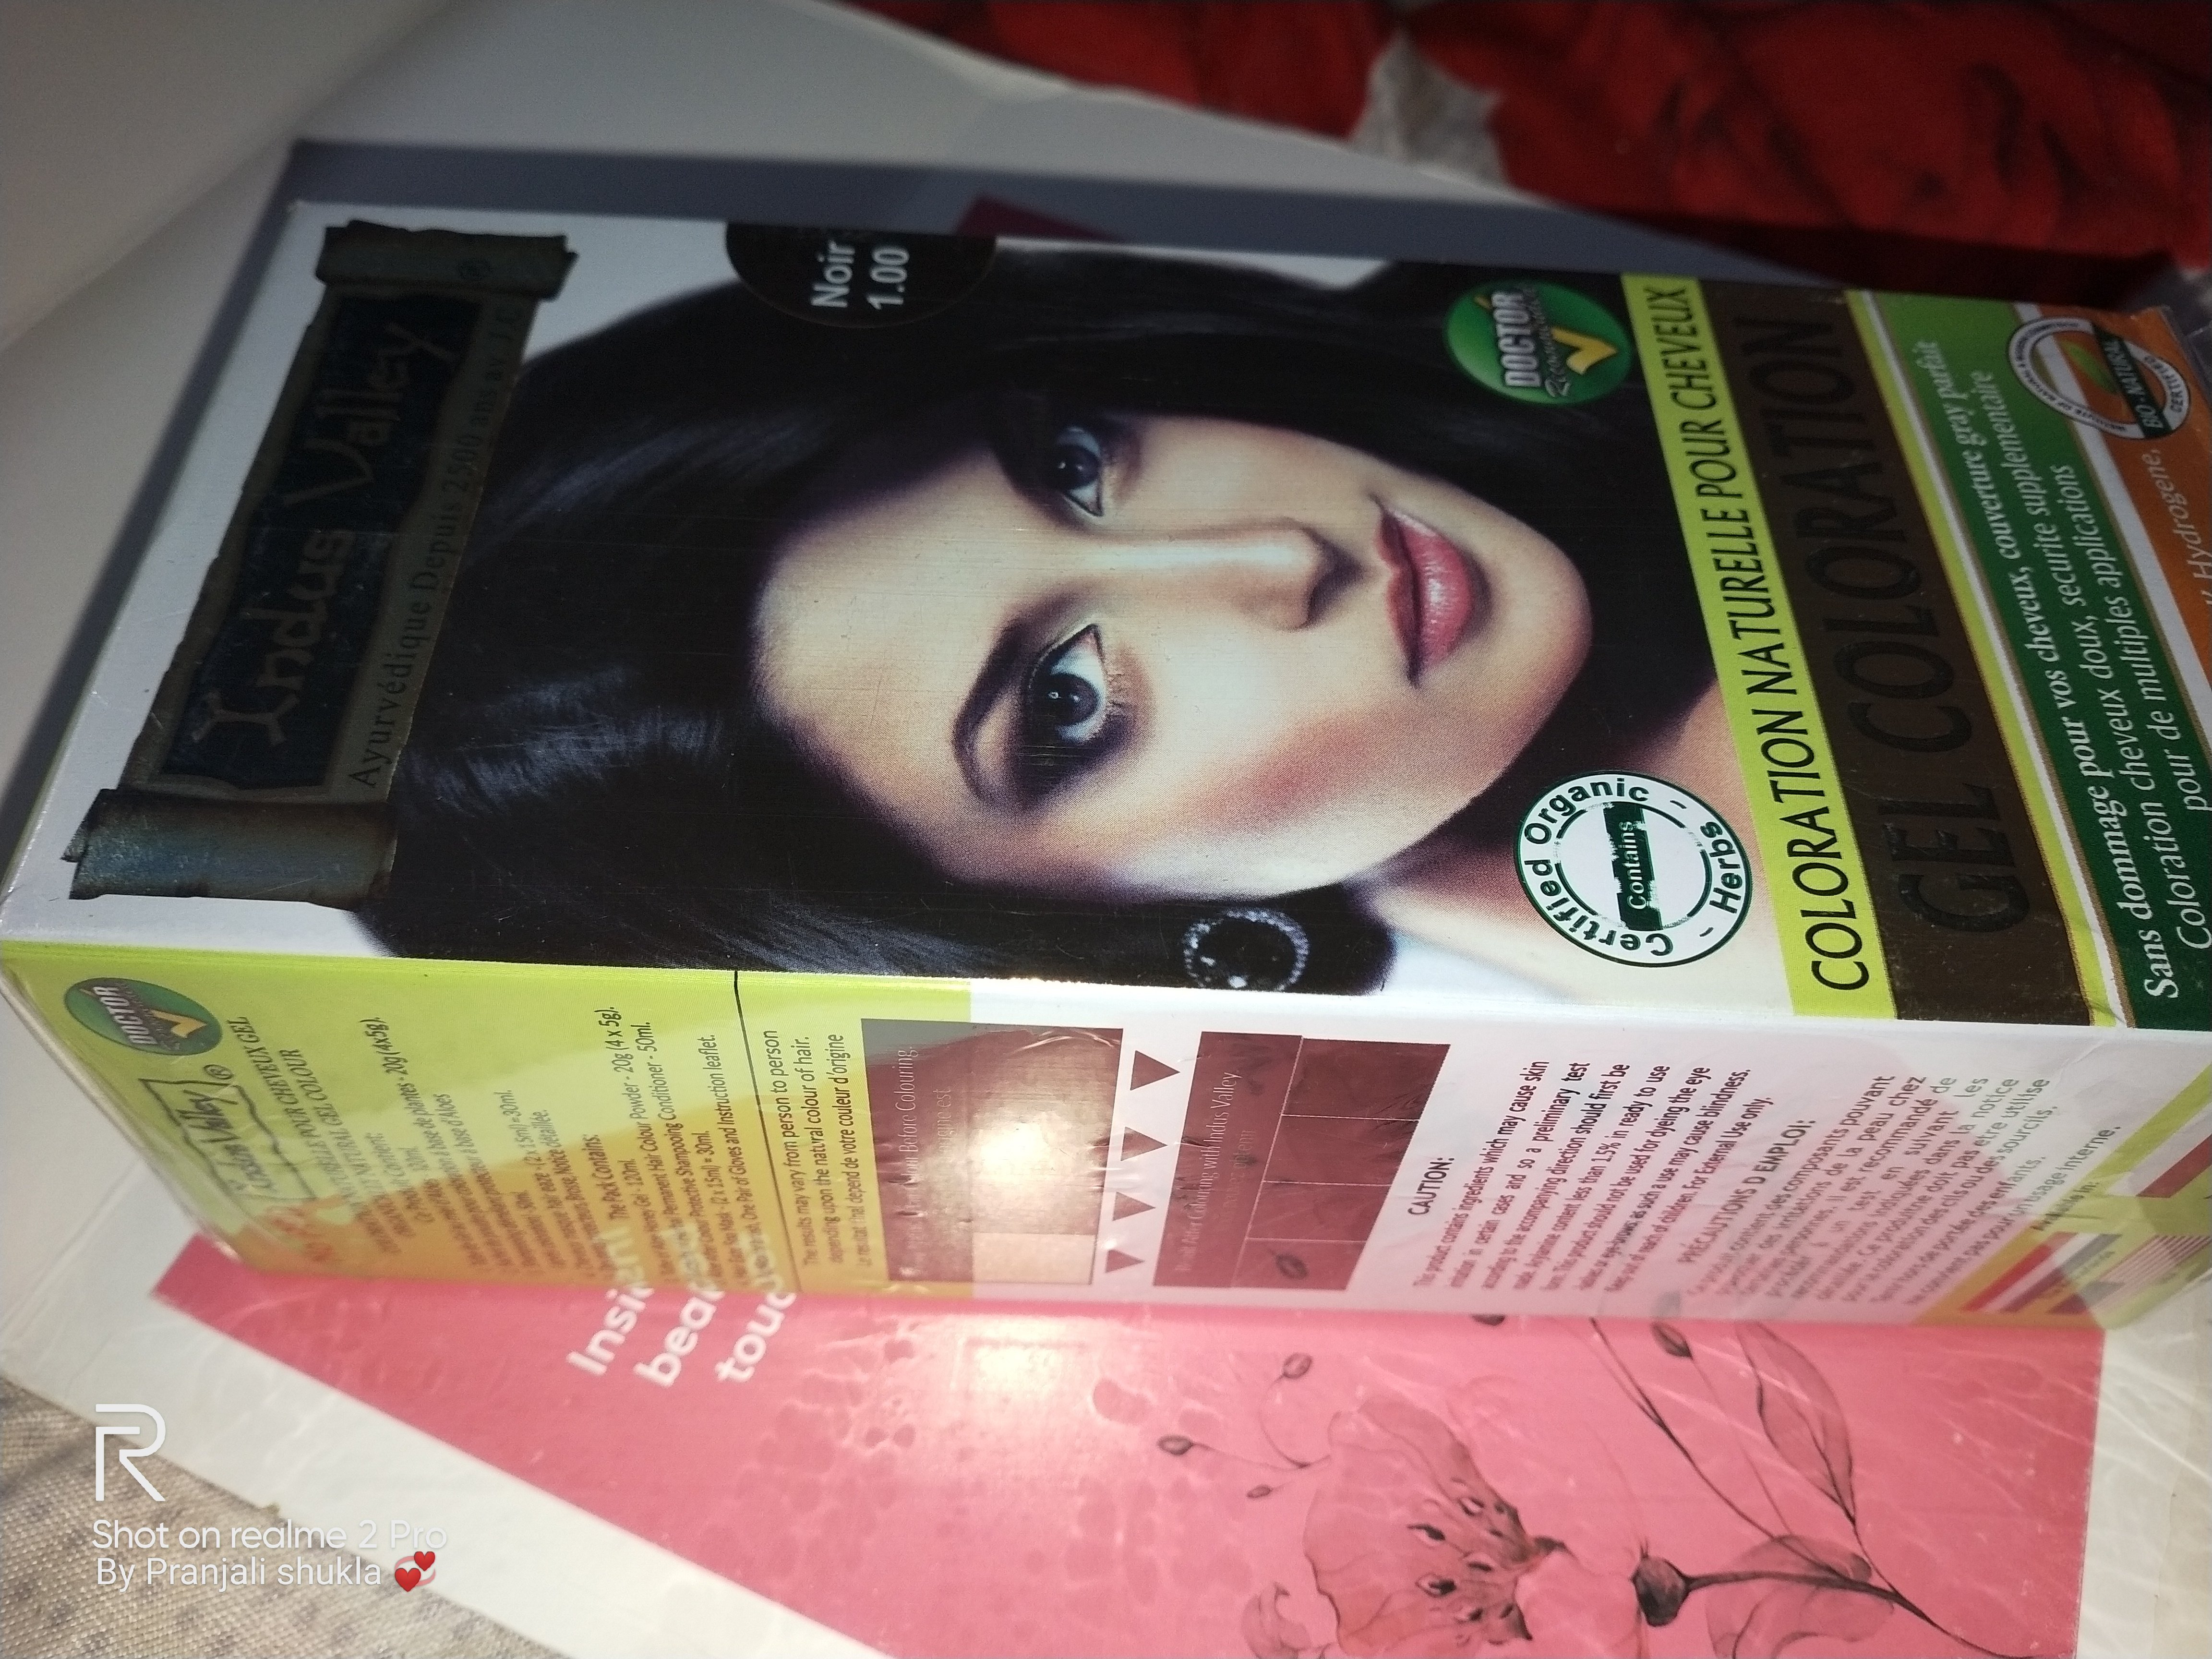 Indus Valley Gel Hair Colour – Natural Black 1.0 -Great product-By pranjali_shukla